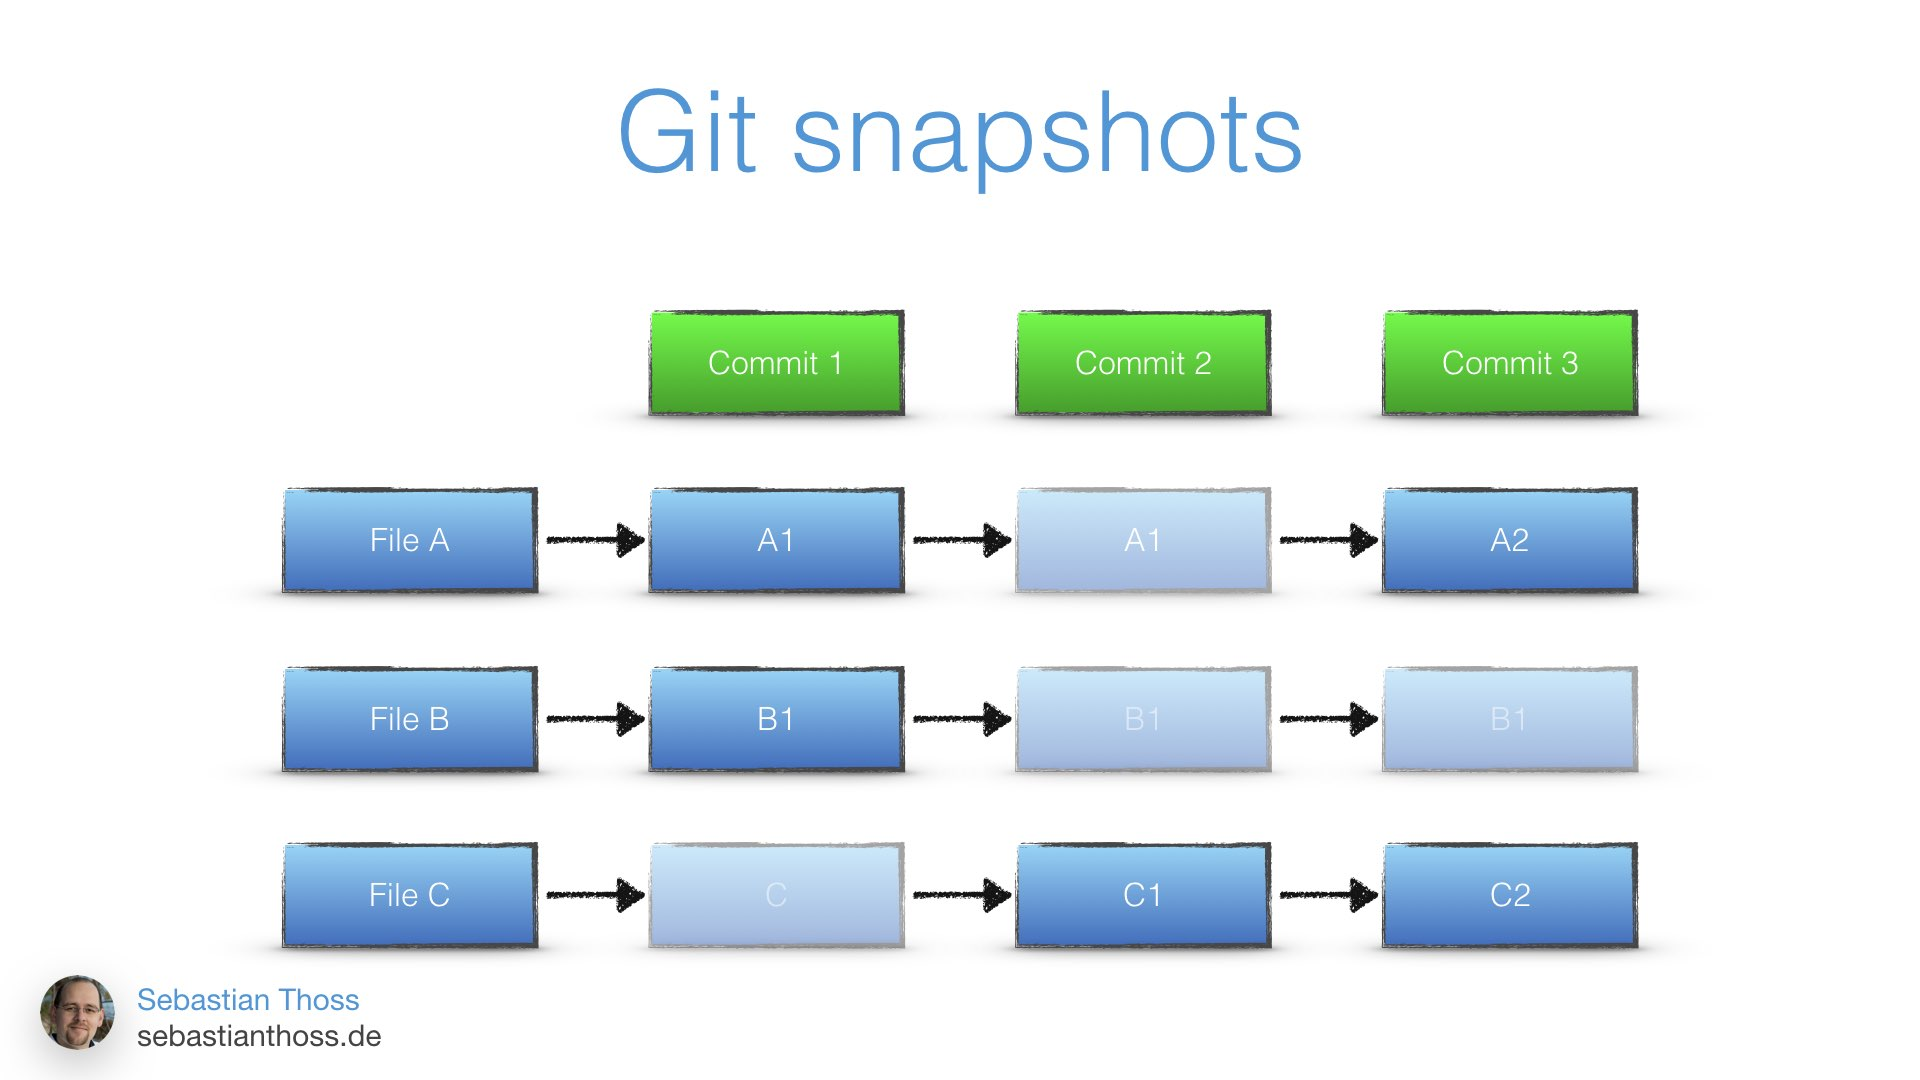 This slide shows how git is doing snapshot commits